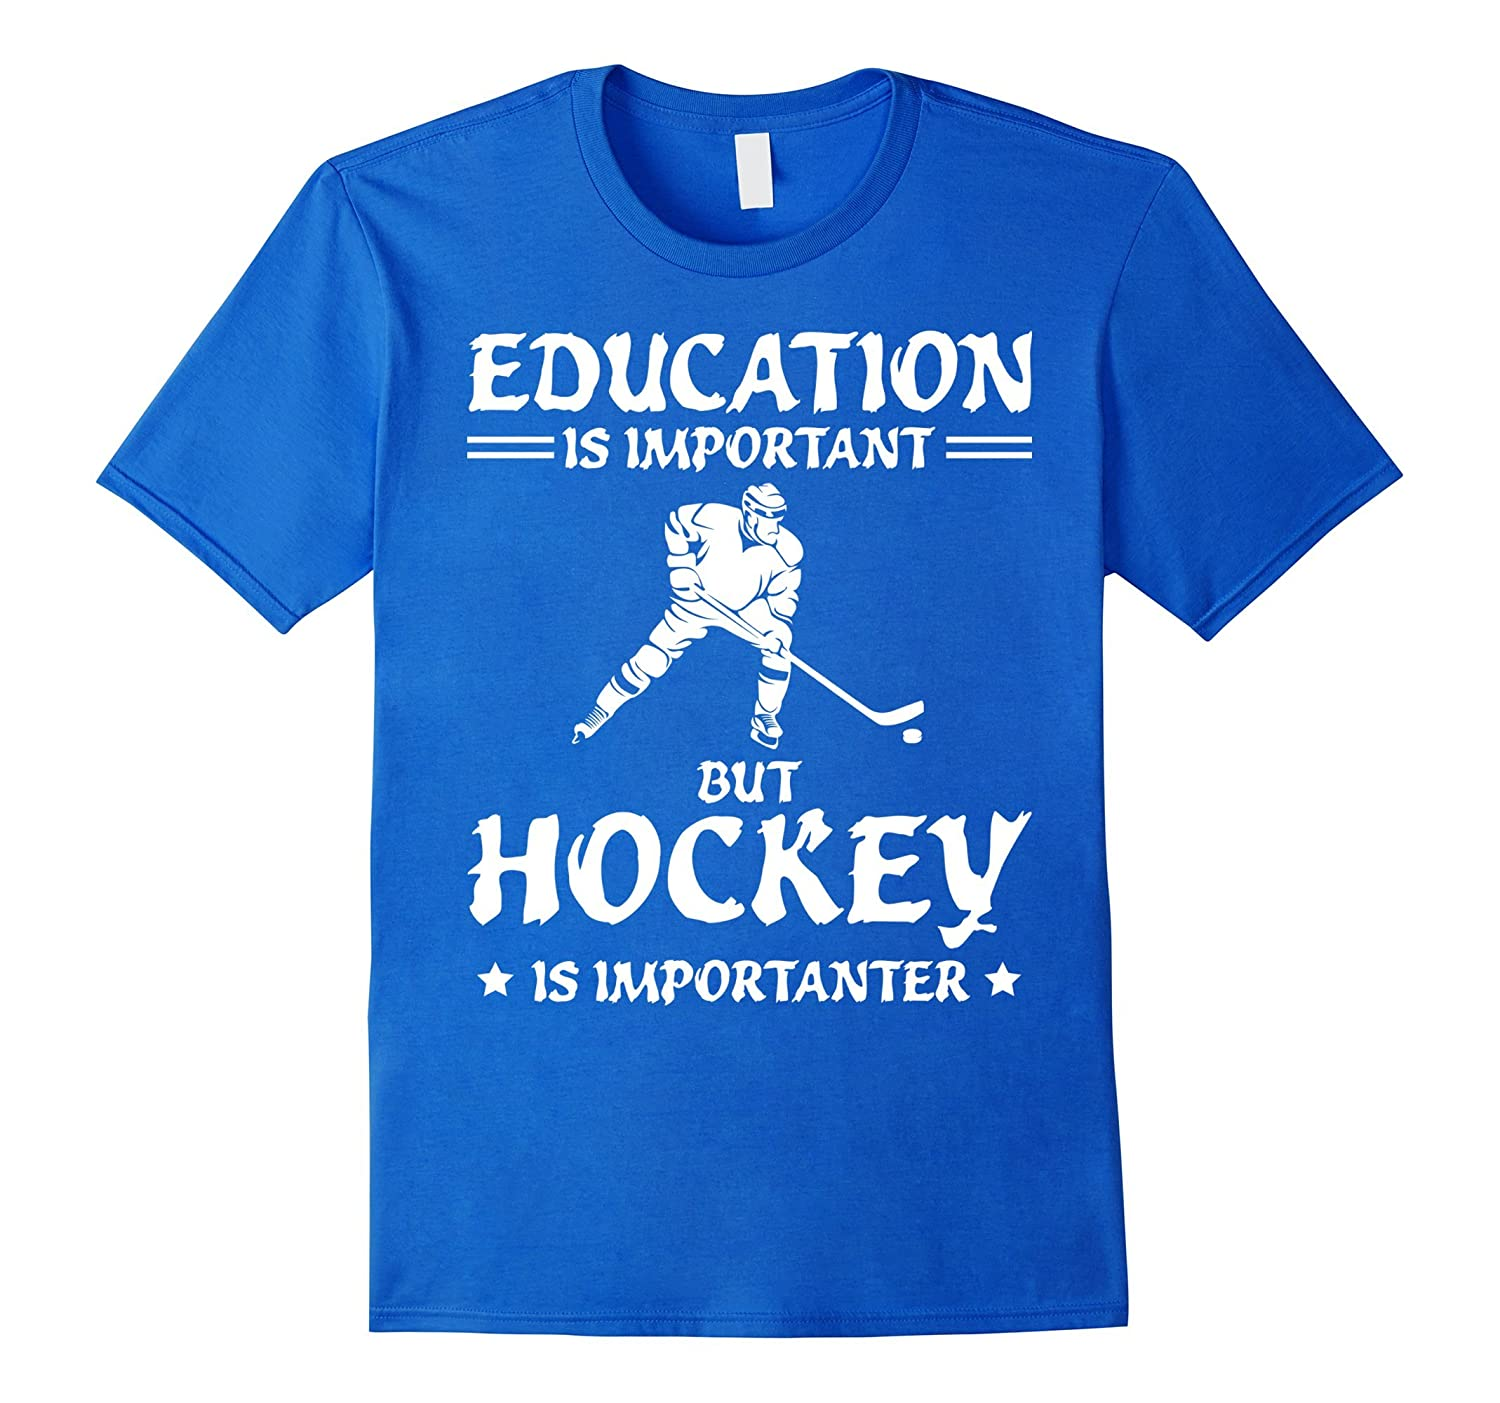 Education Is Important Hockey Is Importanter Funny Shirt ...